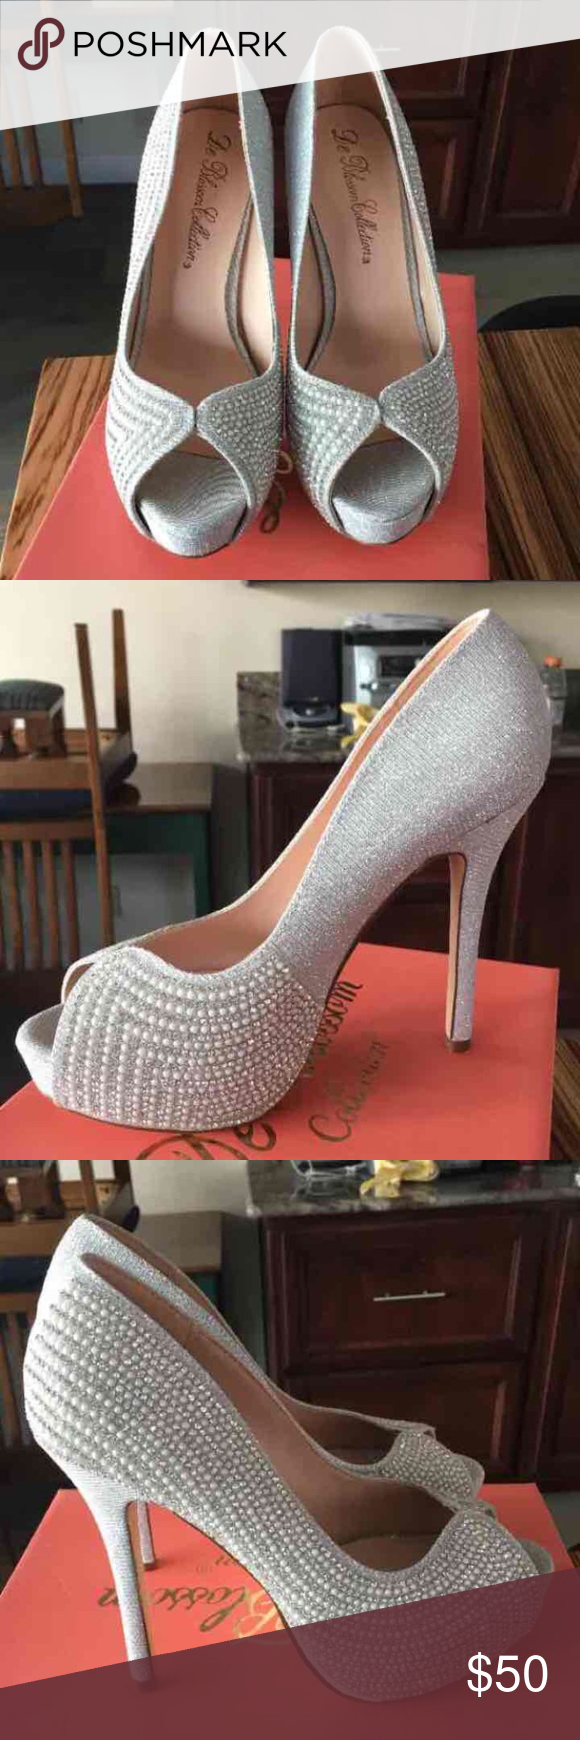 Silver heels De blossom Heels  Size: 7,8  Silver Heels Peep toe  Platform - 1 inch  Heel - 4 inches ish  Total height 5 inches ish   BNIB  Perfect for prom, homecoming, weddings, formal wear, winter formal Shoes Heels